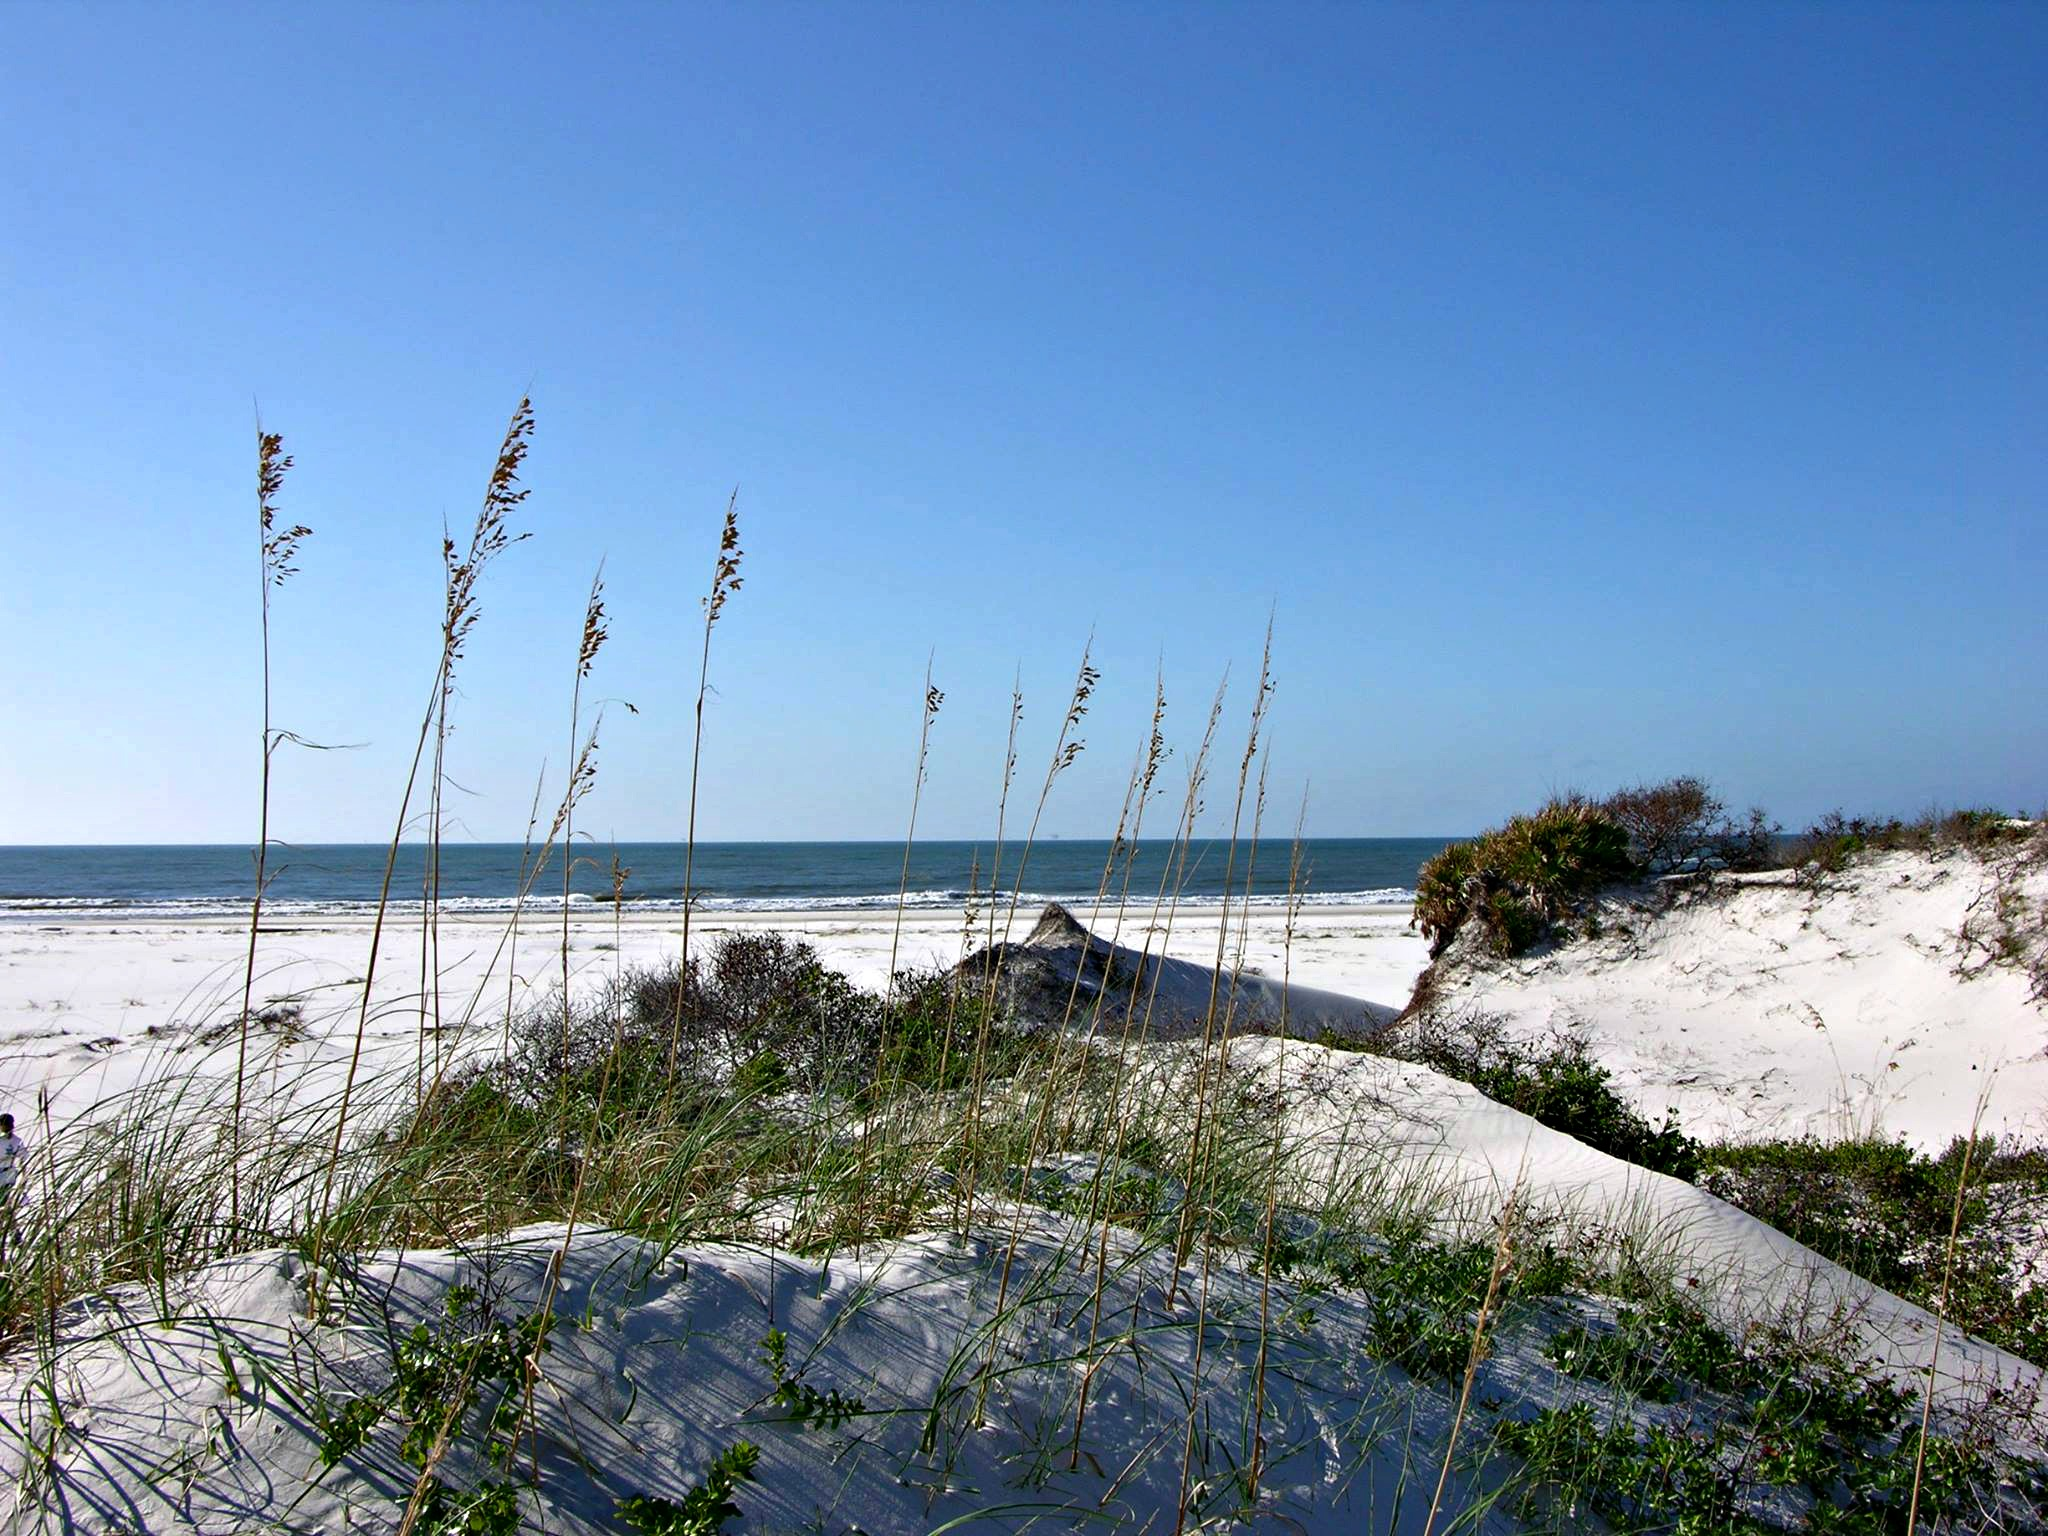 Sea oats and sand dunes at Bon Secour National Wildlife Refuge, one of ten easy day trips from Gulf Shores, AL